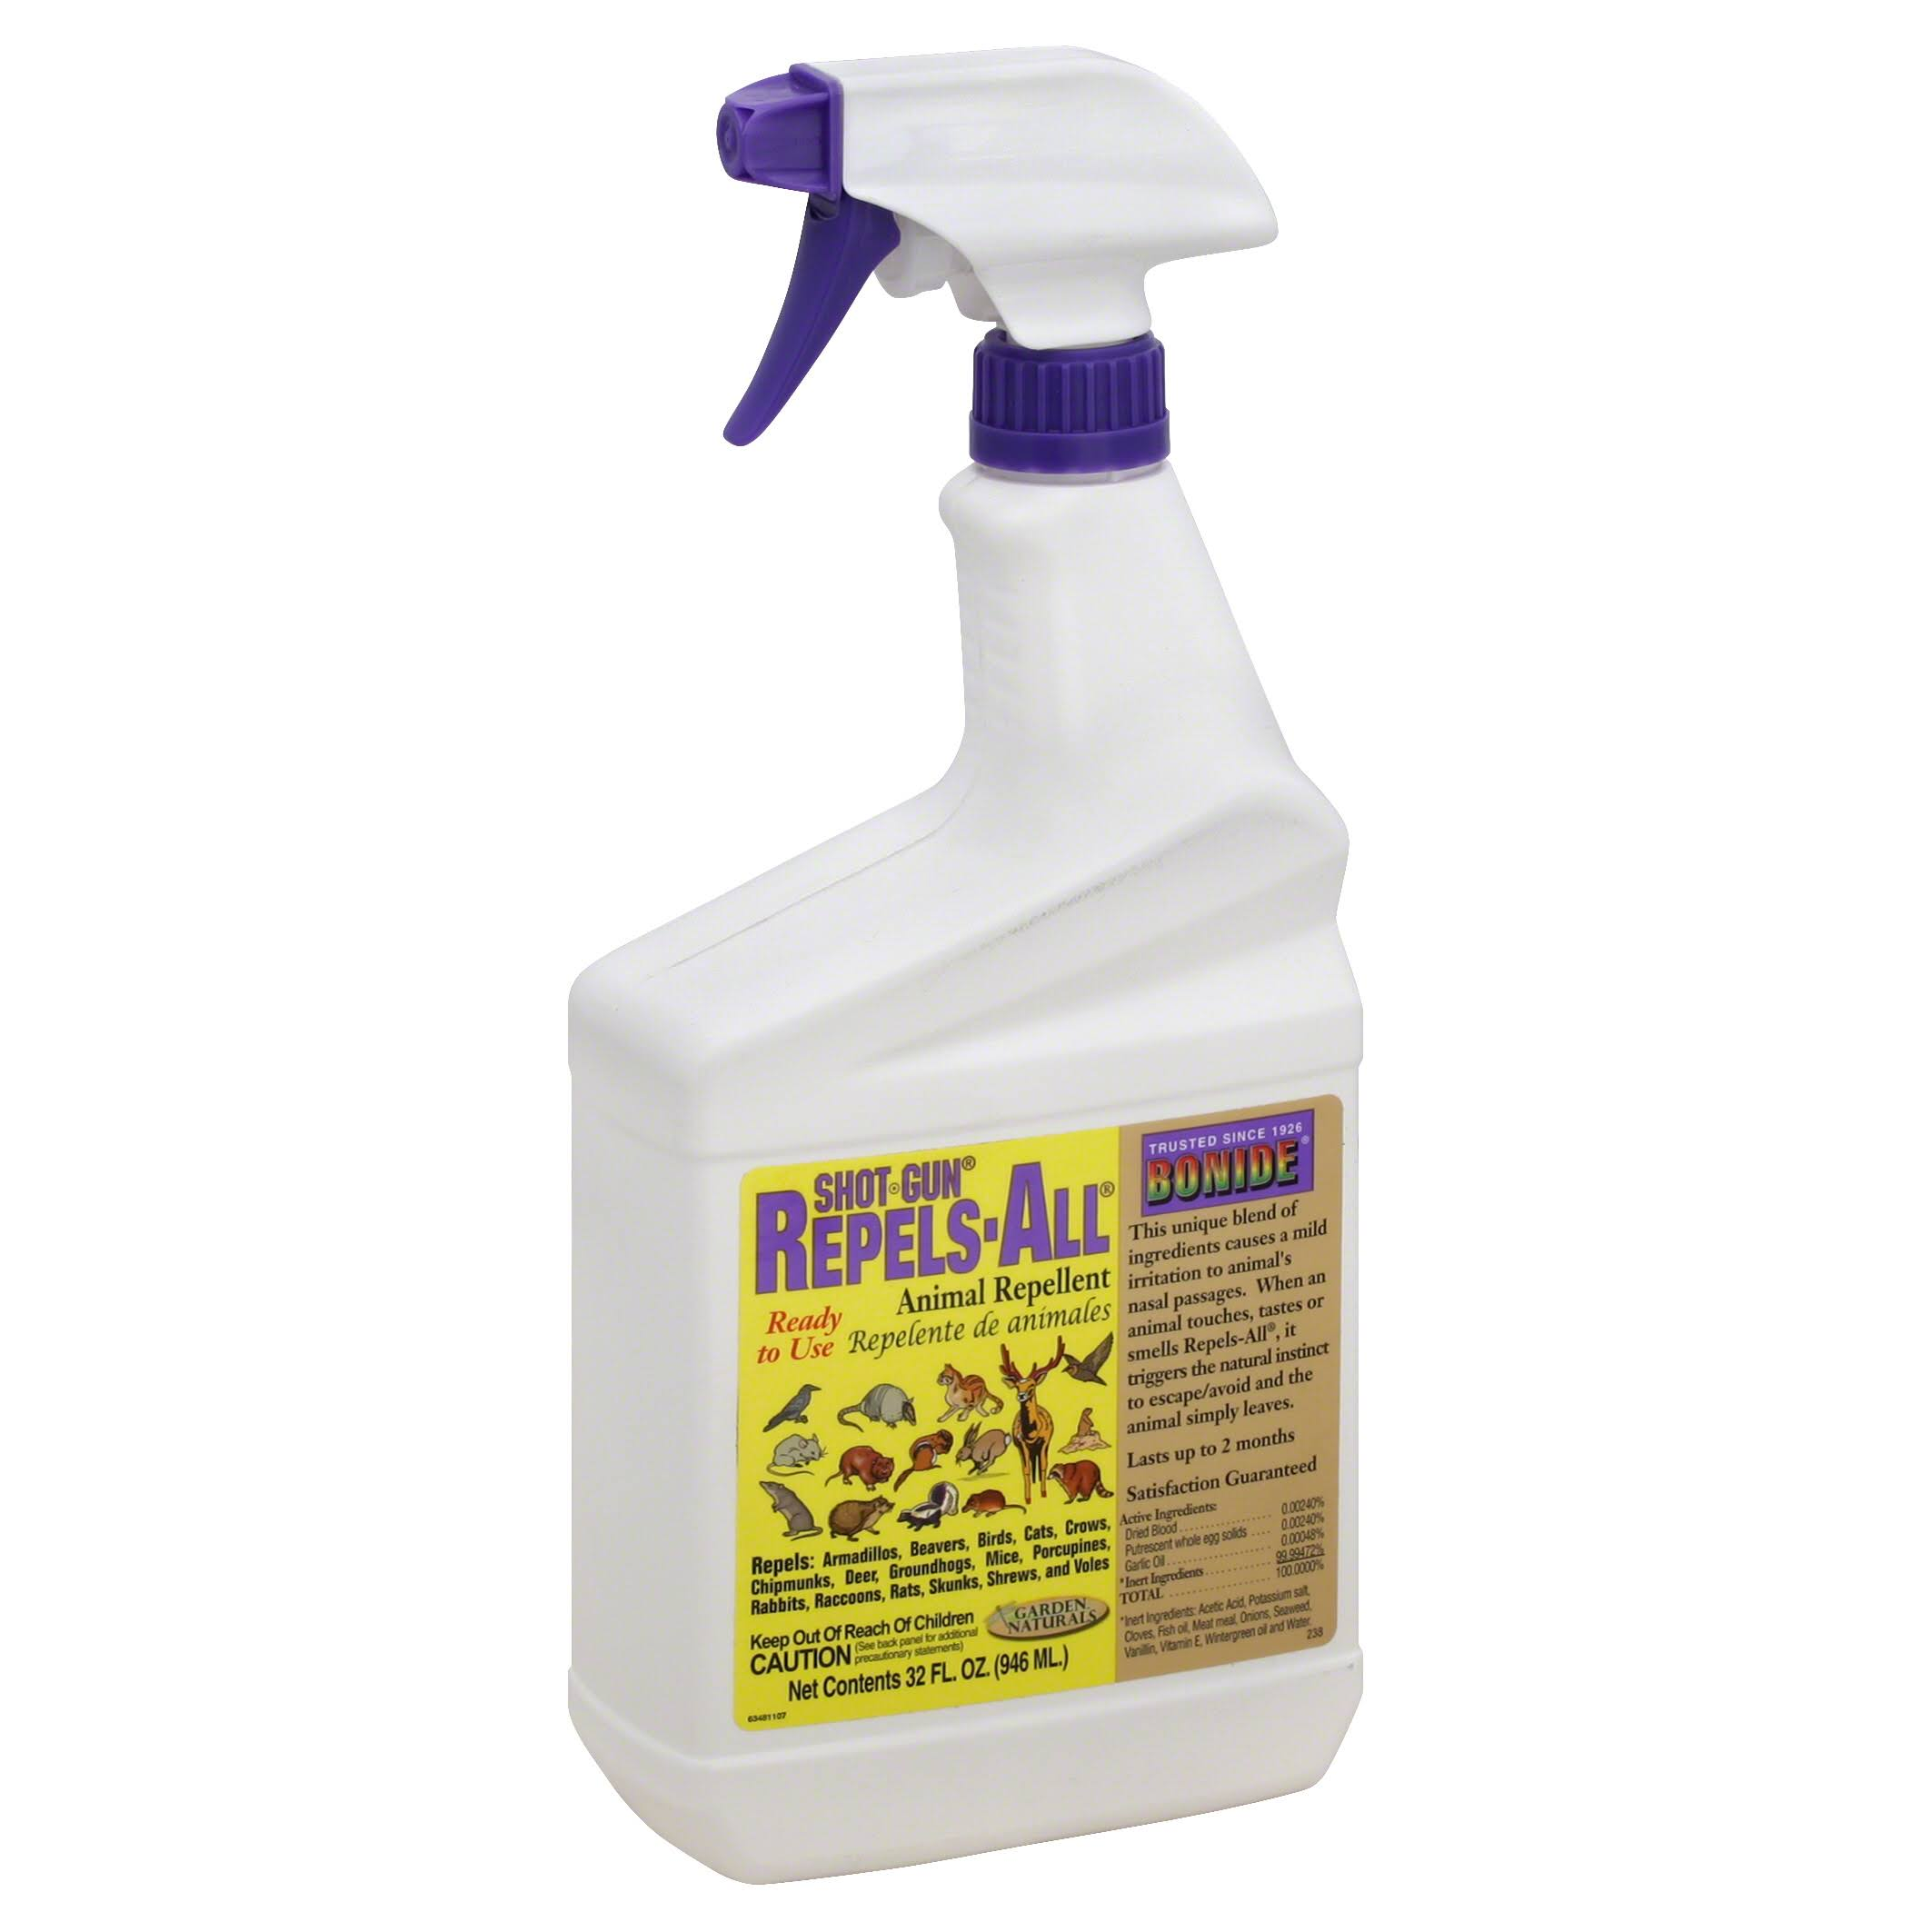 Bonide 238 Shot-Gun Repels-All Animal Repellent - 1qt